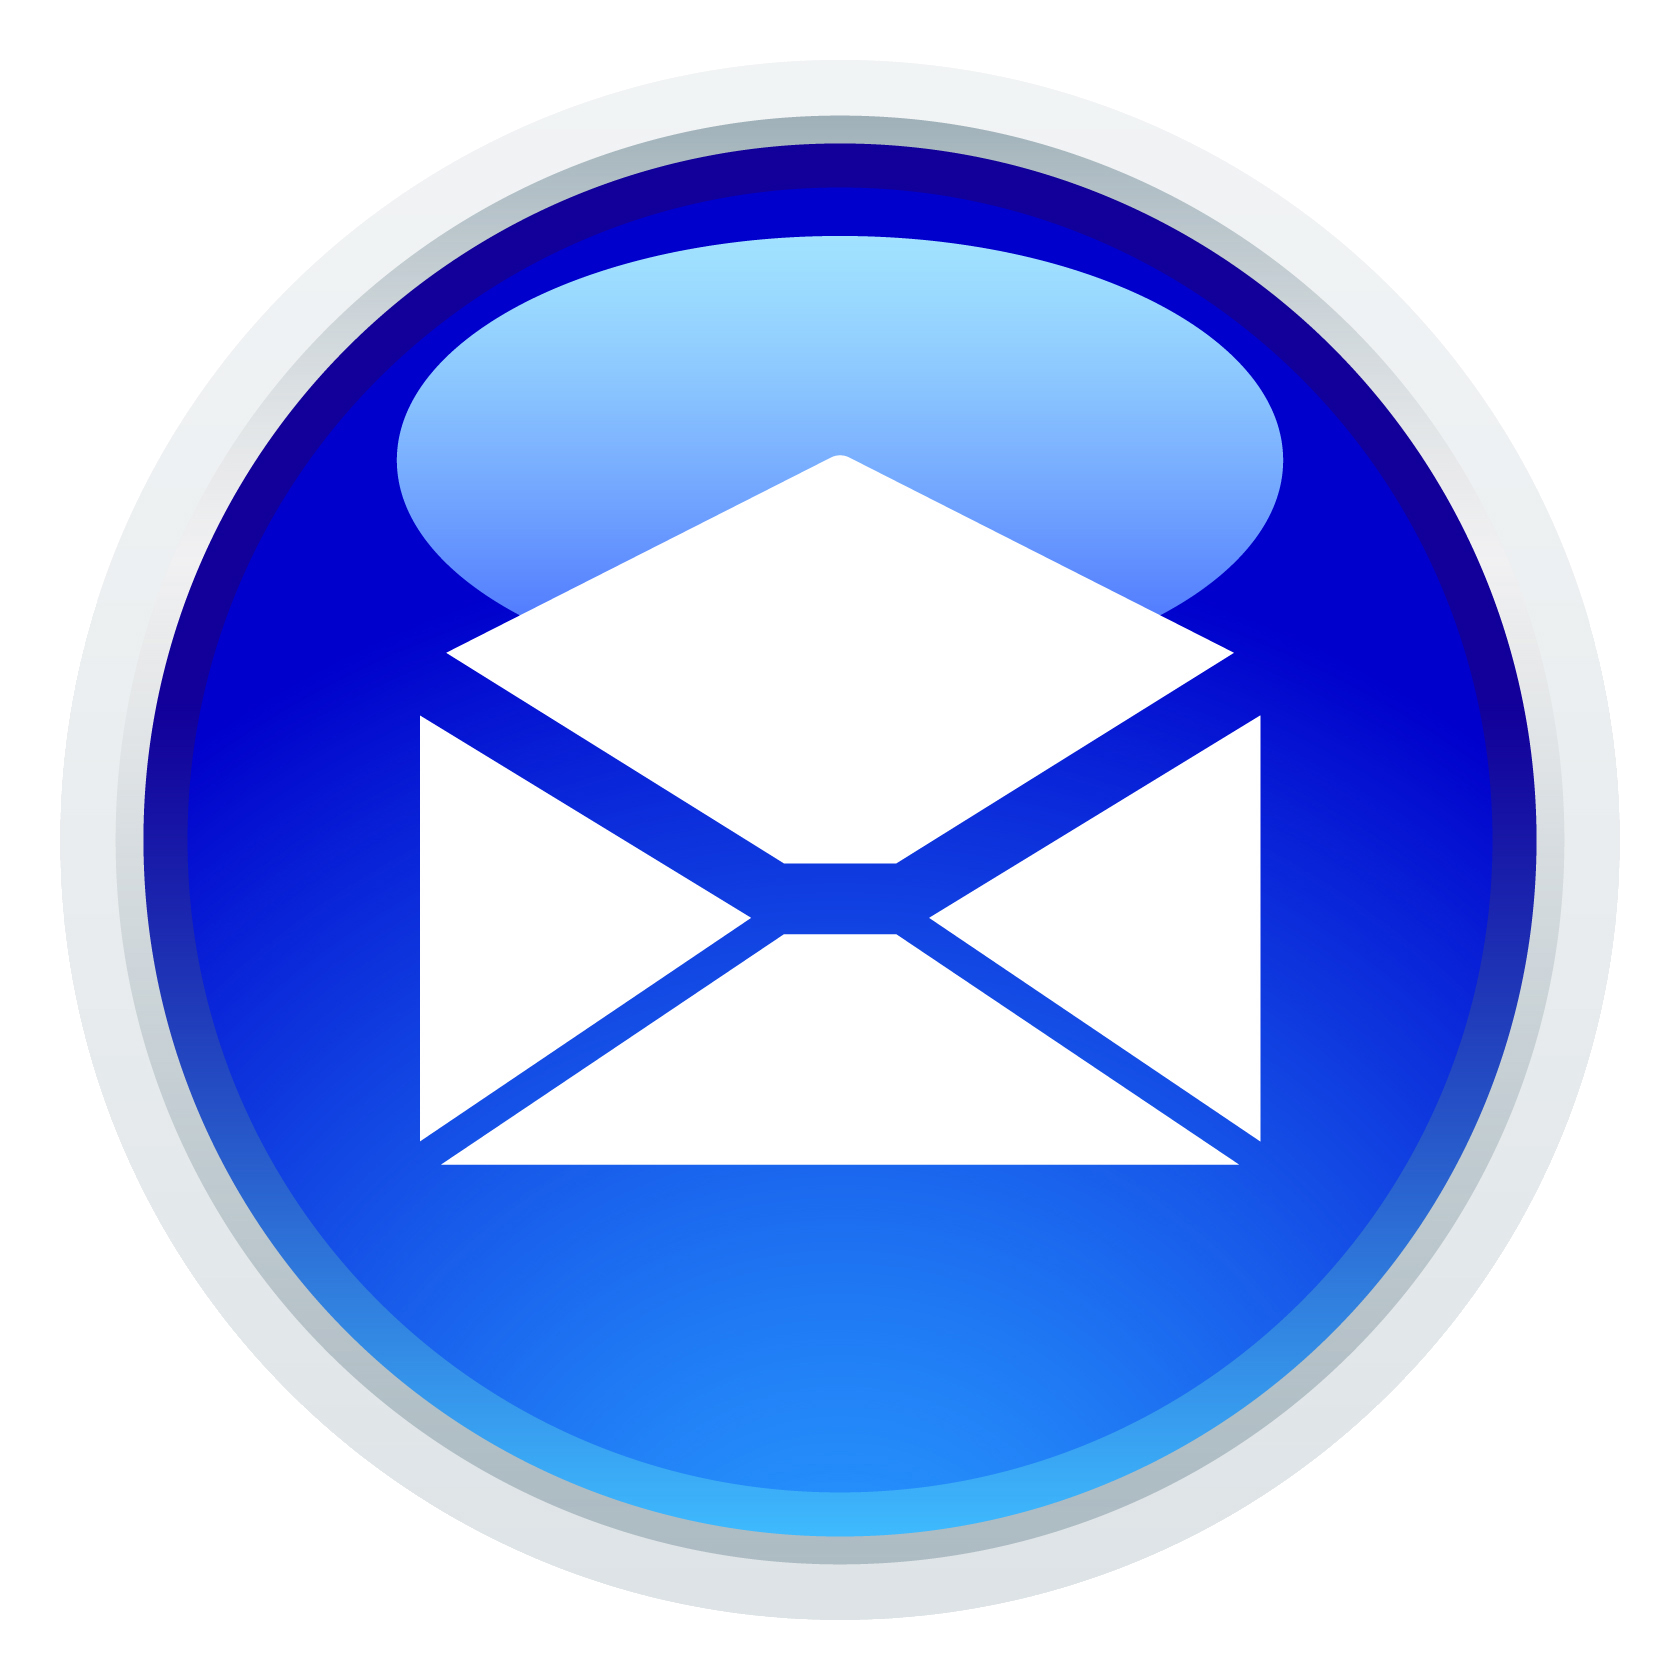 Email png csdfs pinterest. Mail clipart sms logo